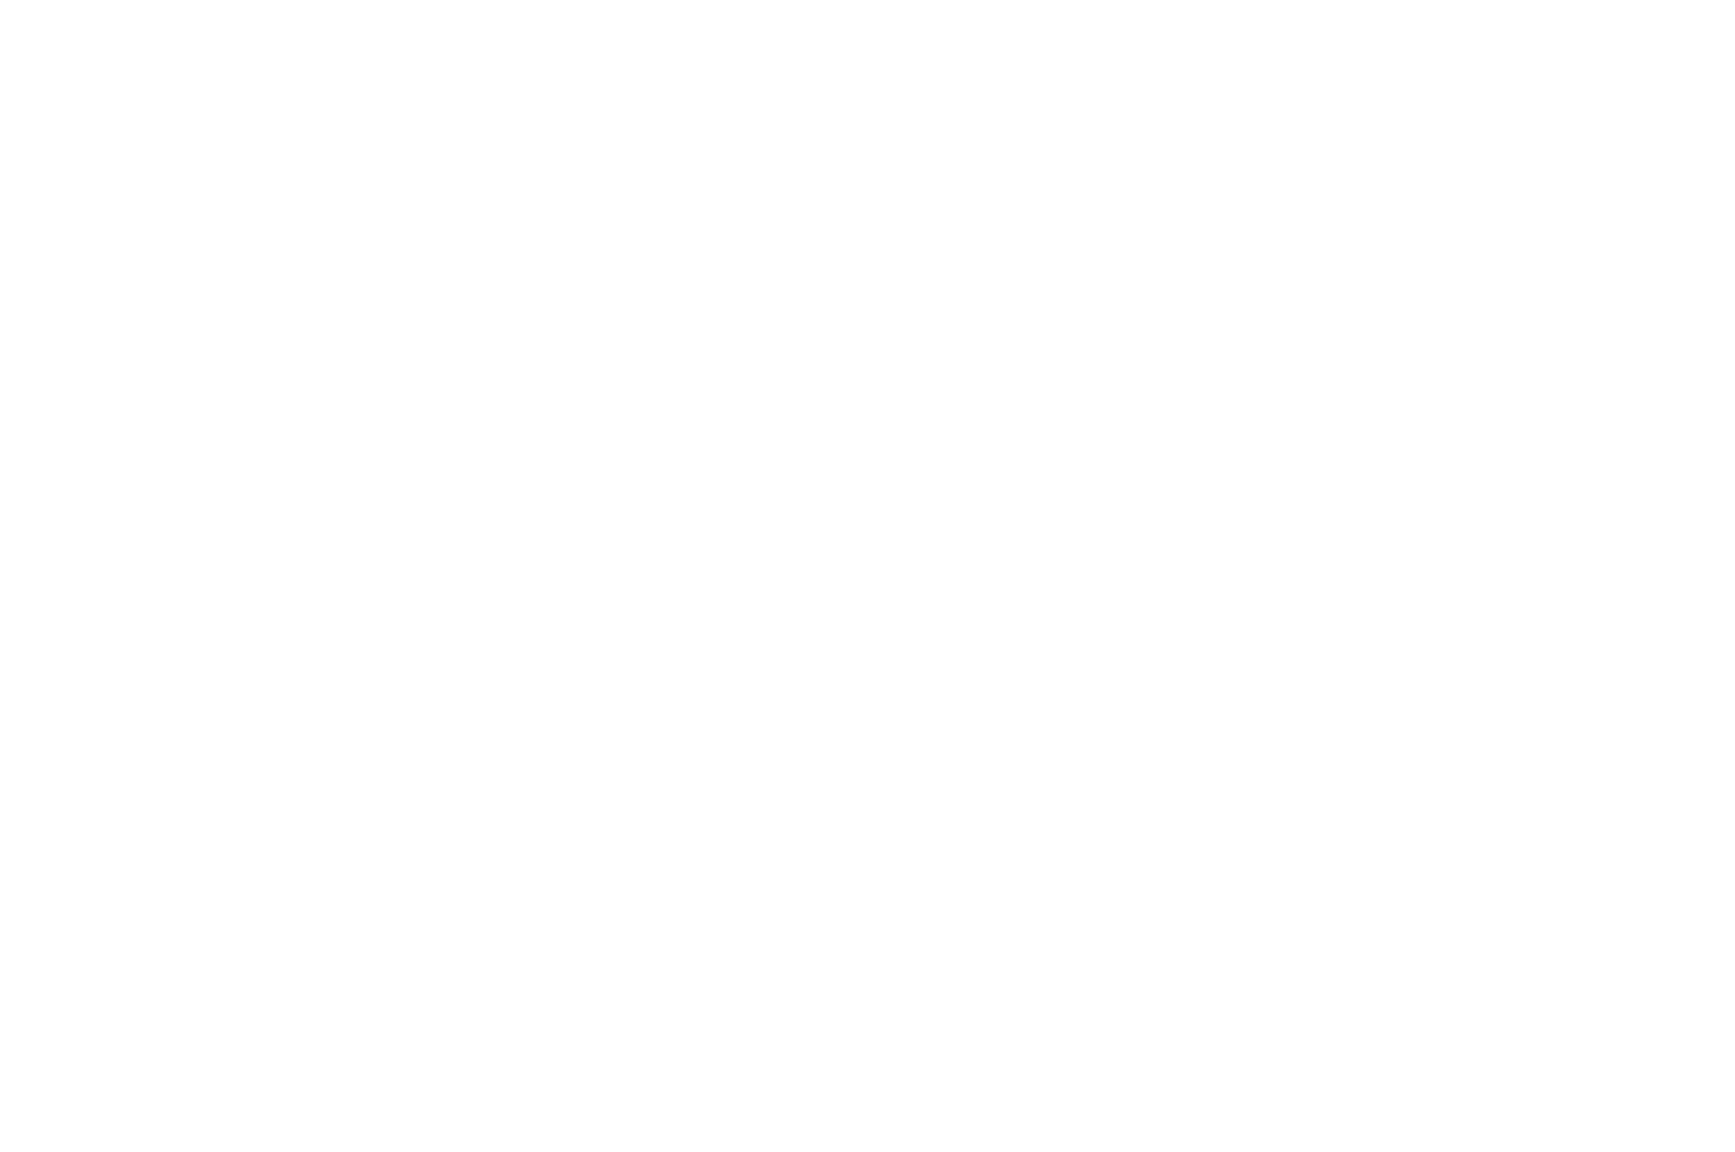 OFFICIAL SELECTION - Lone Star Film Festival - 2021